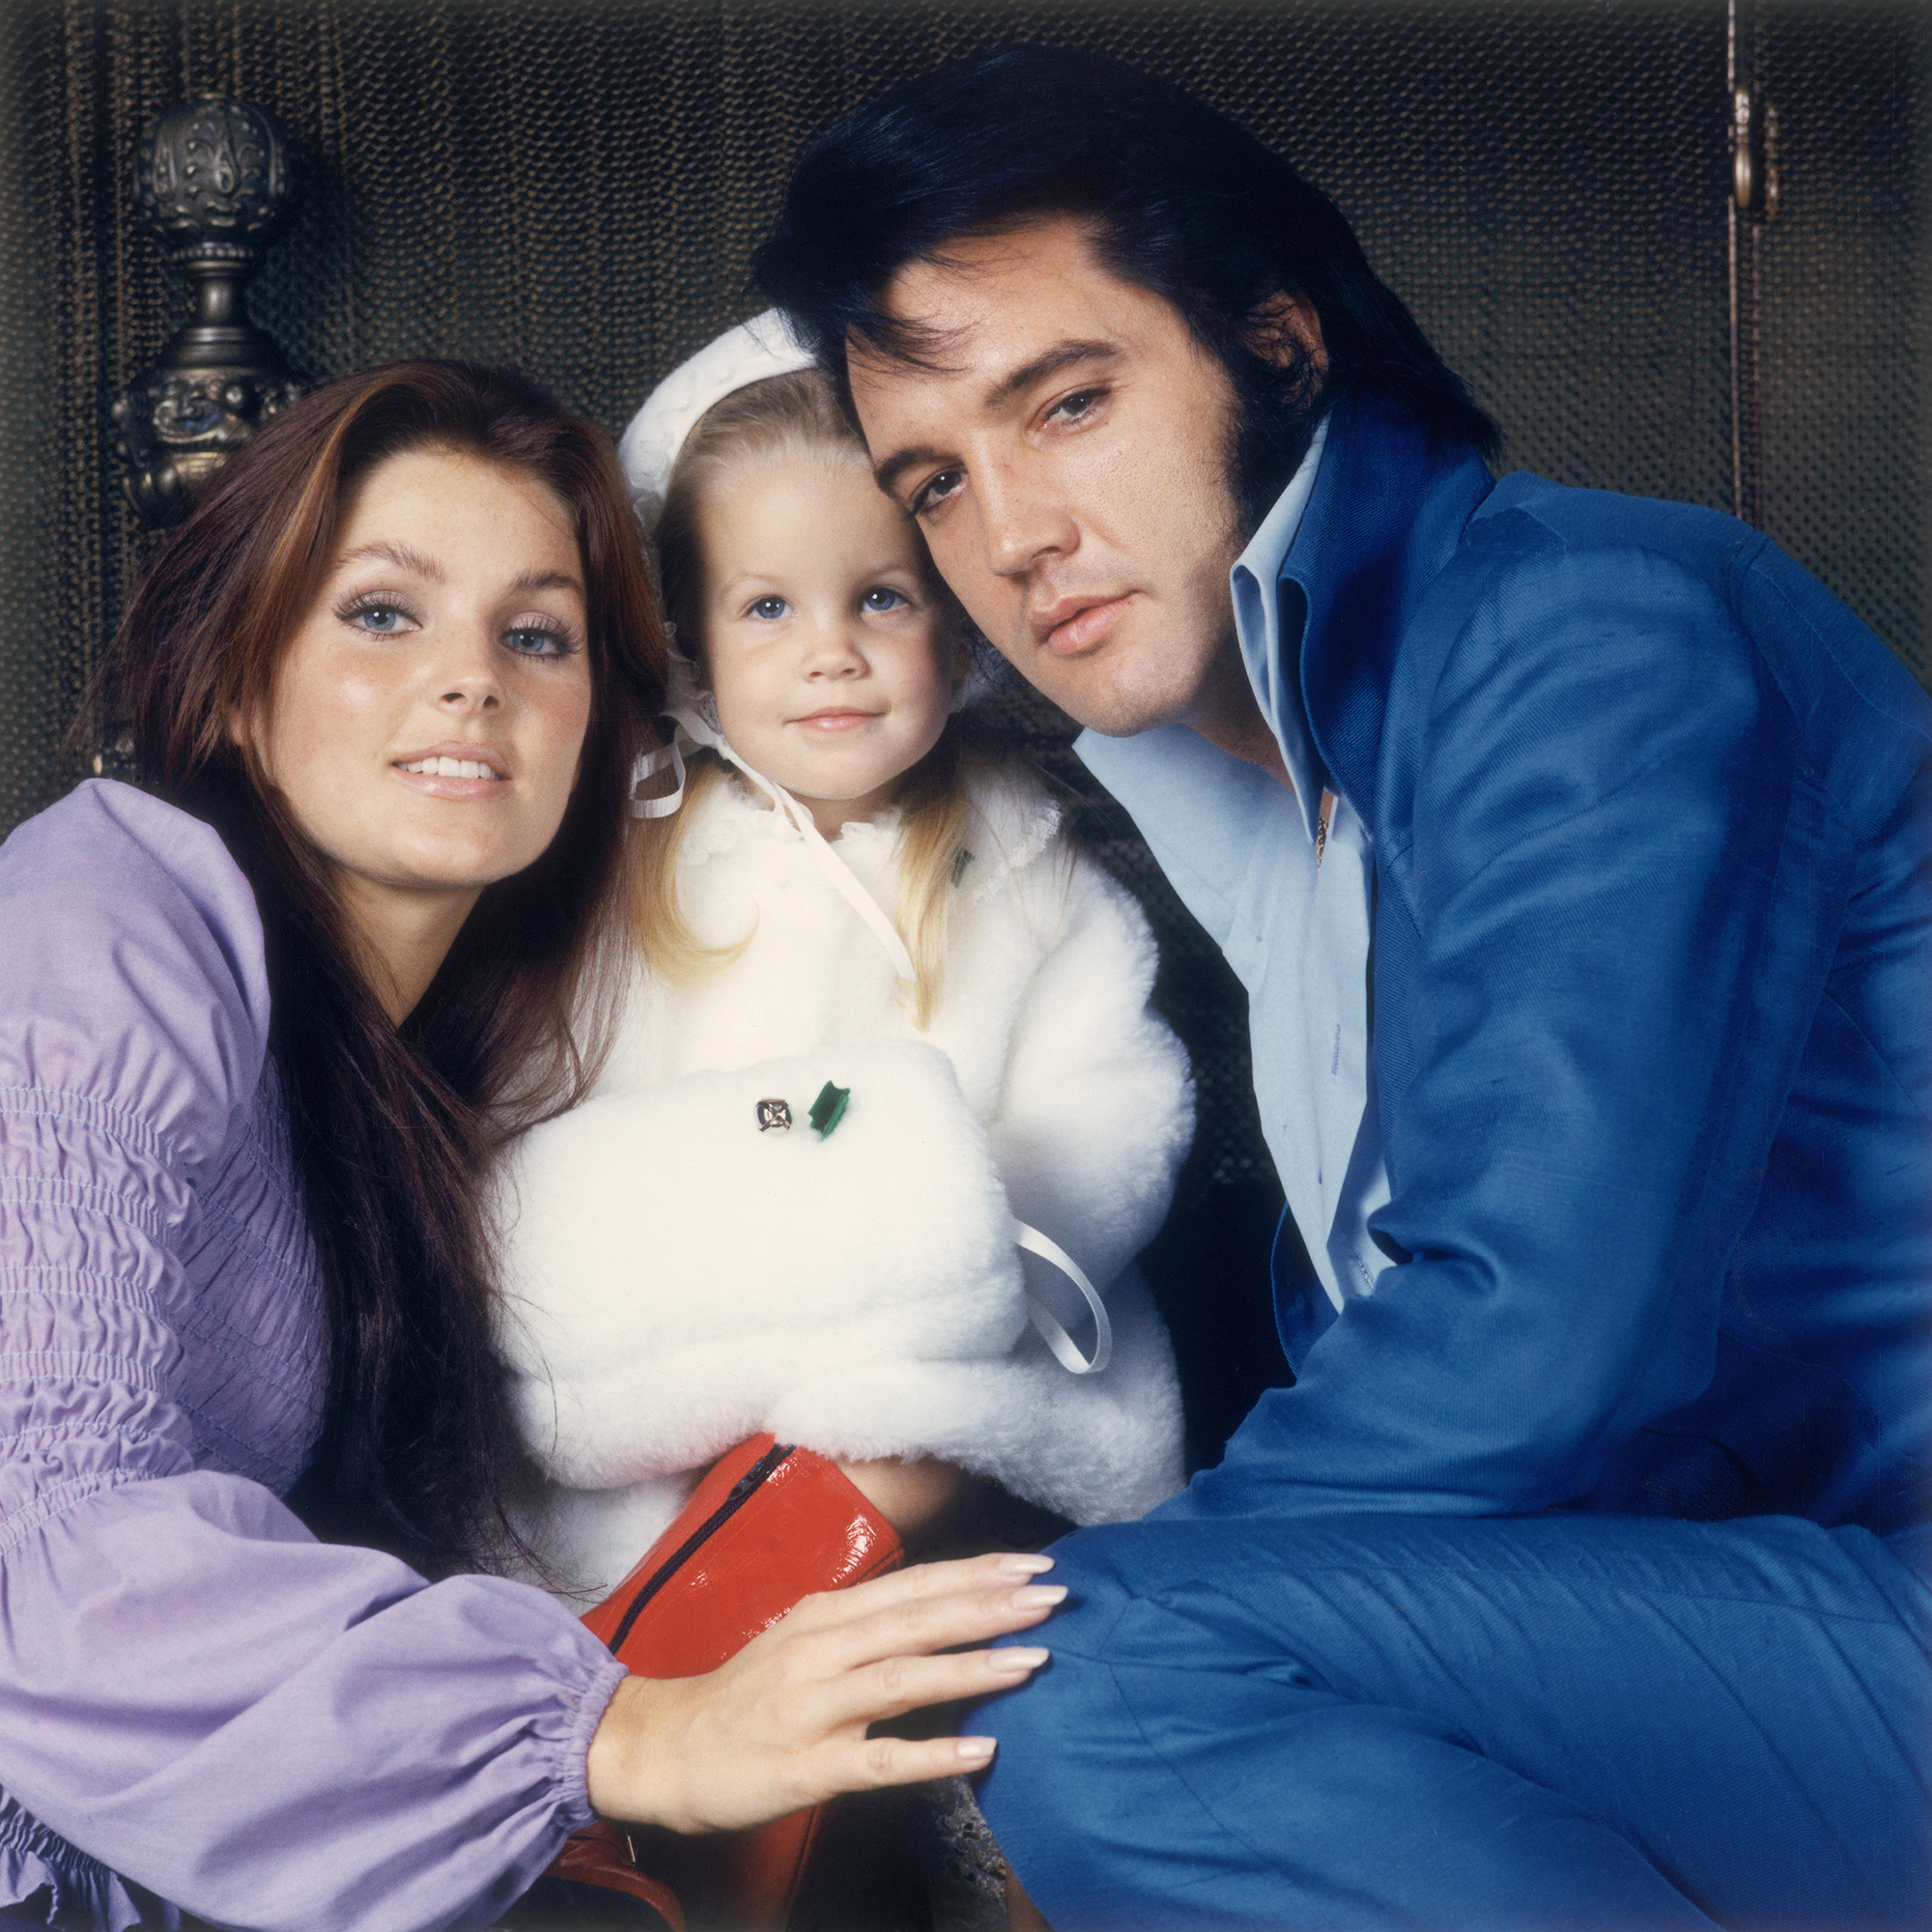 Elvis with his wife Priscilla and their daughter Lisa-Marie as they pose for a family portrait, 1970s.